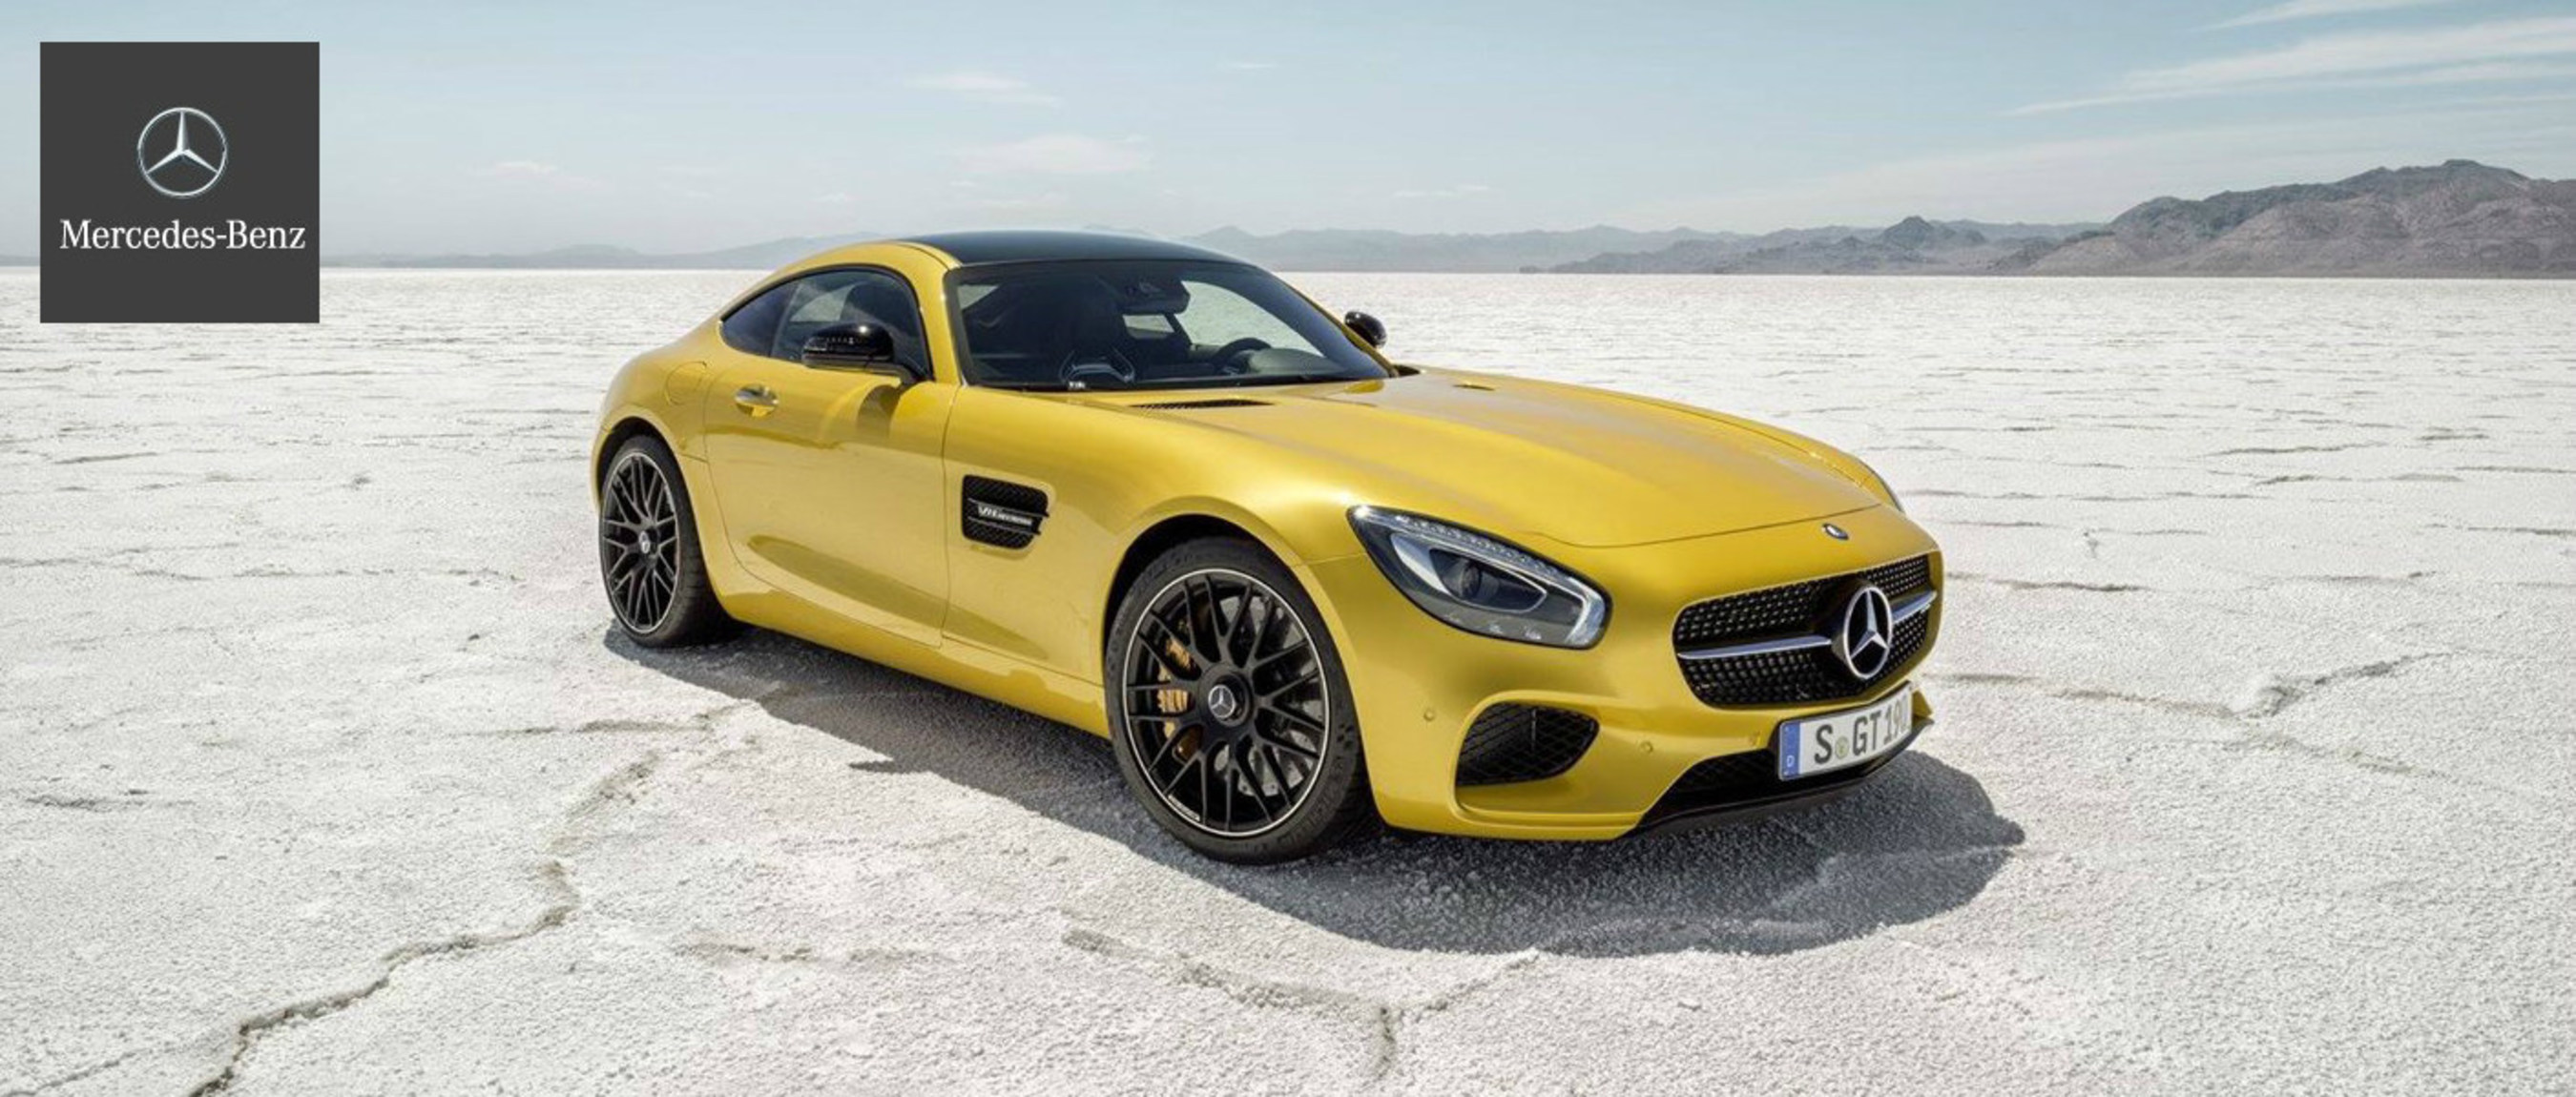 Kansas City drivers can schedule test drive of new Mercedes-AMG GT prior to arrival